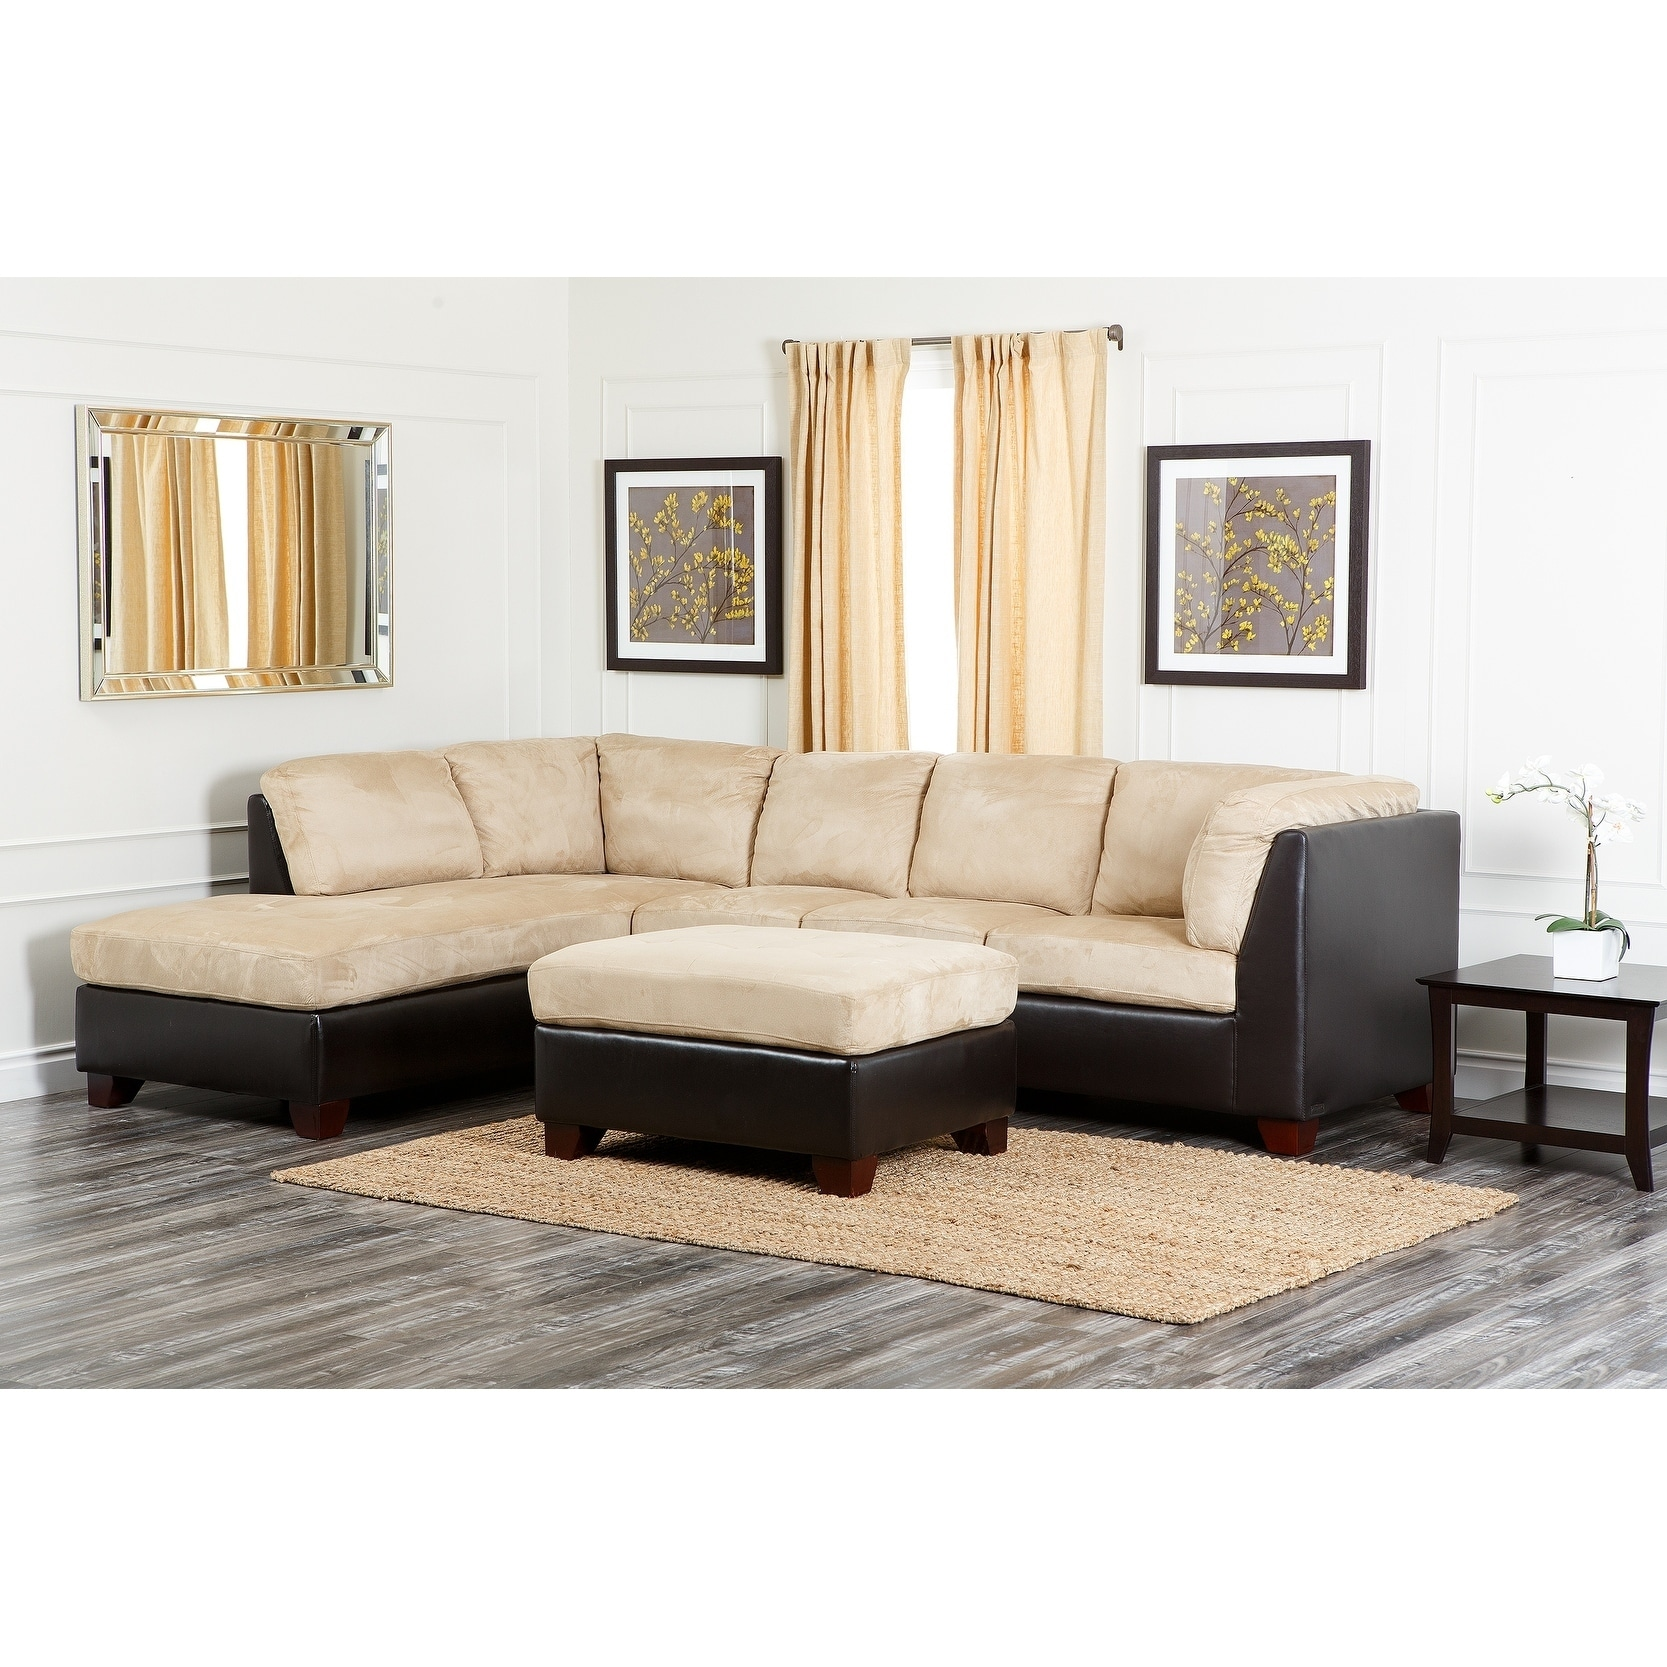 name id home product page sectional at index beige by leather italian elda sofa category chain bg